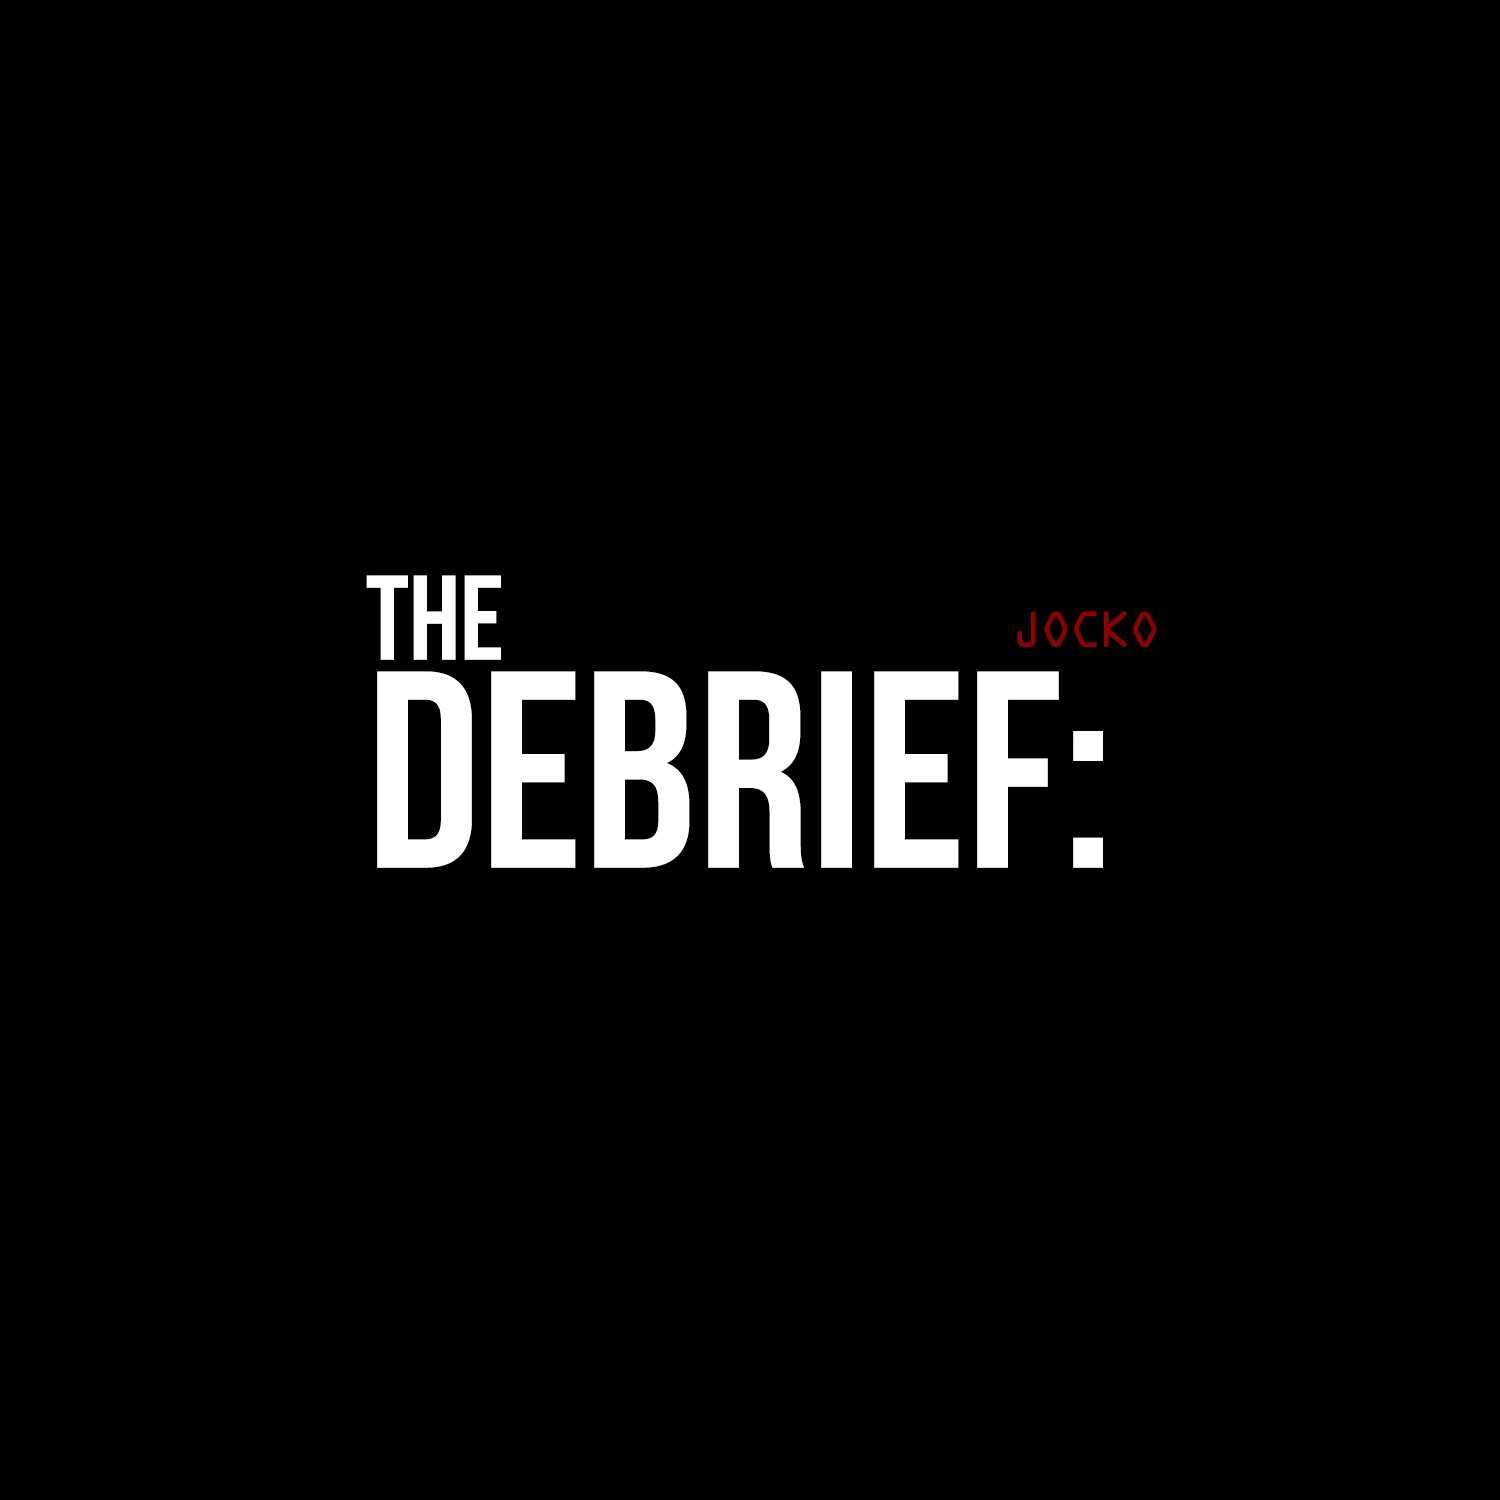 The Debrief w/ Jocko and Dave Berke #17: Calculating How Often You Should Argue With The People Around You